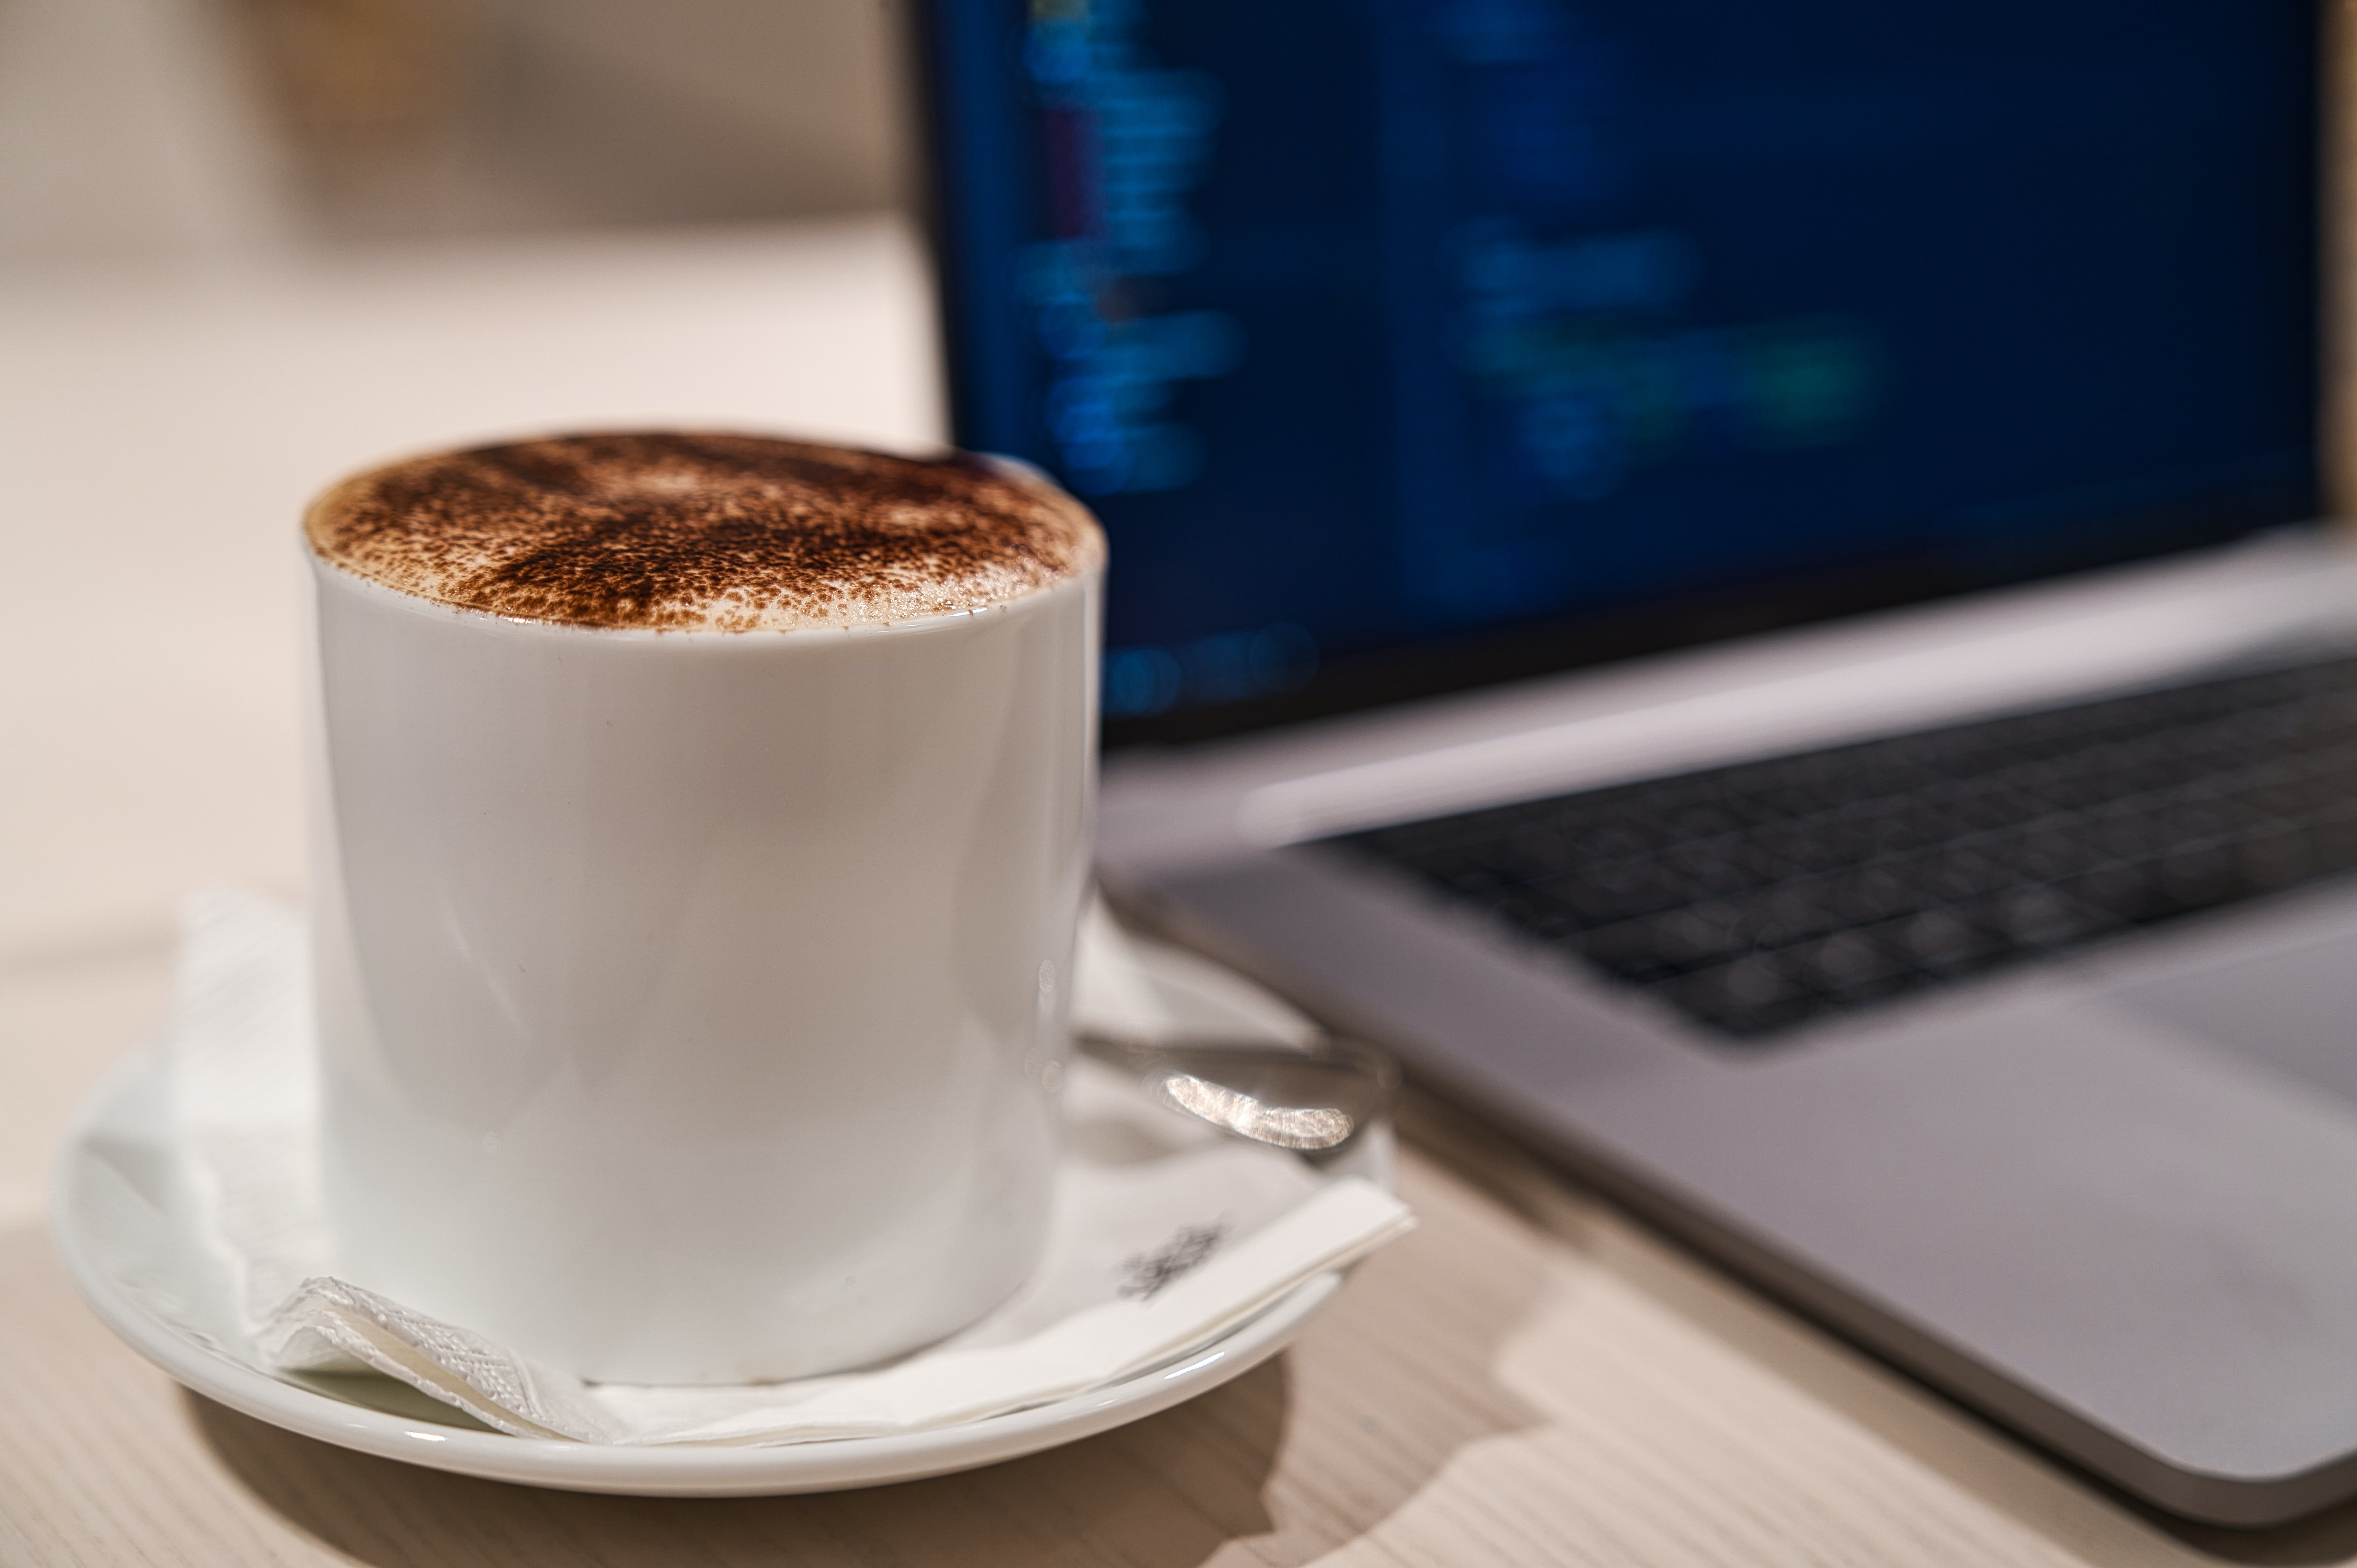 Coffee at the office